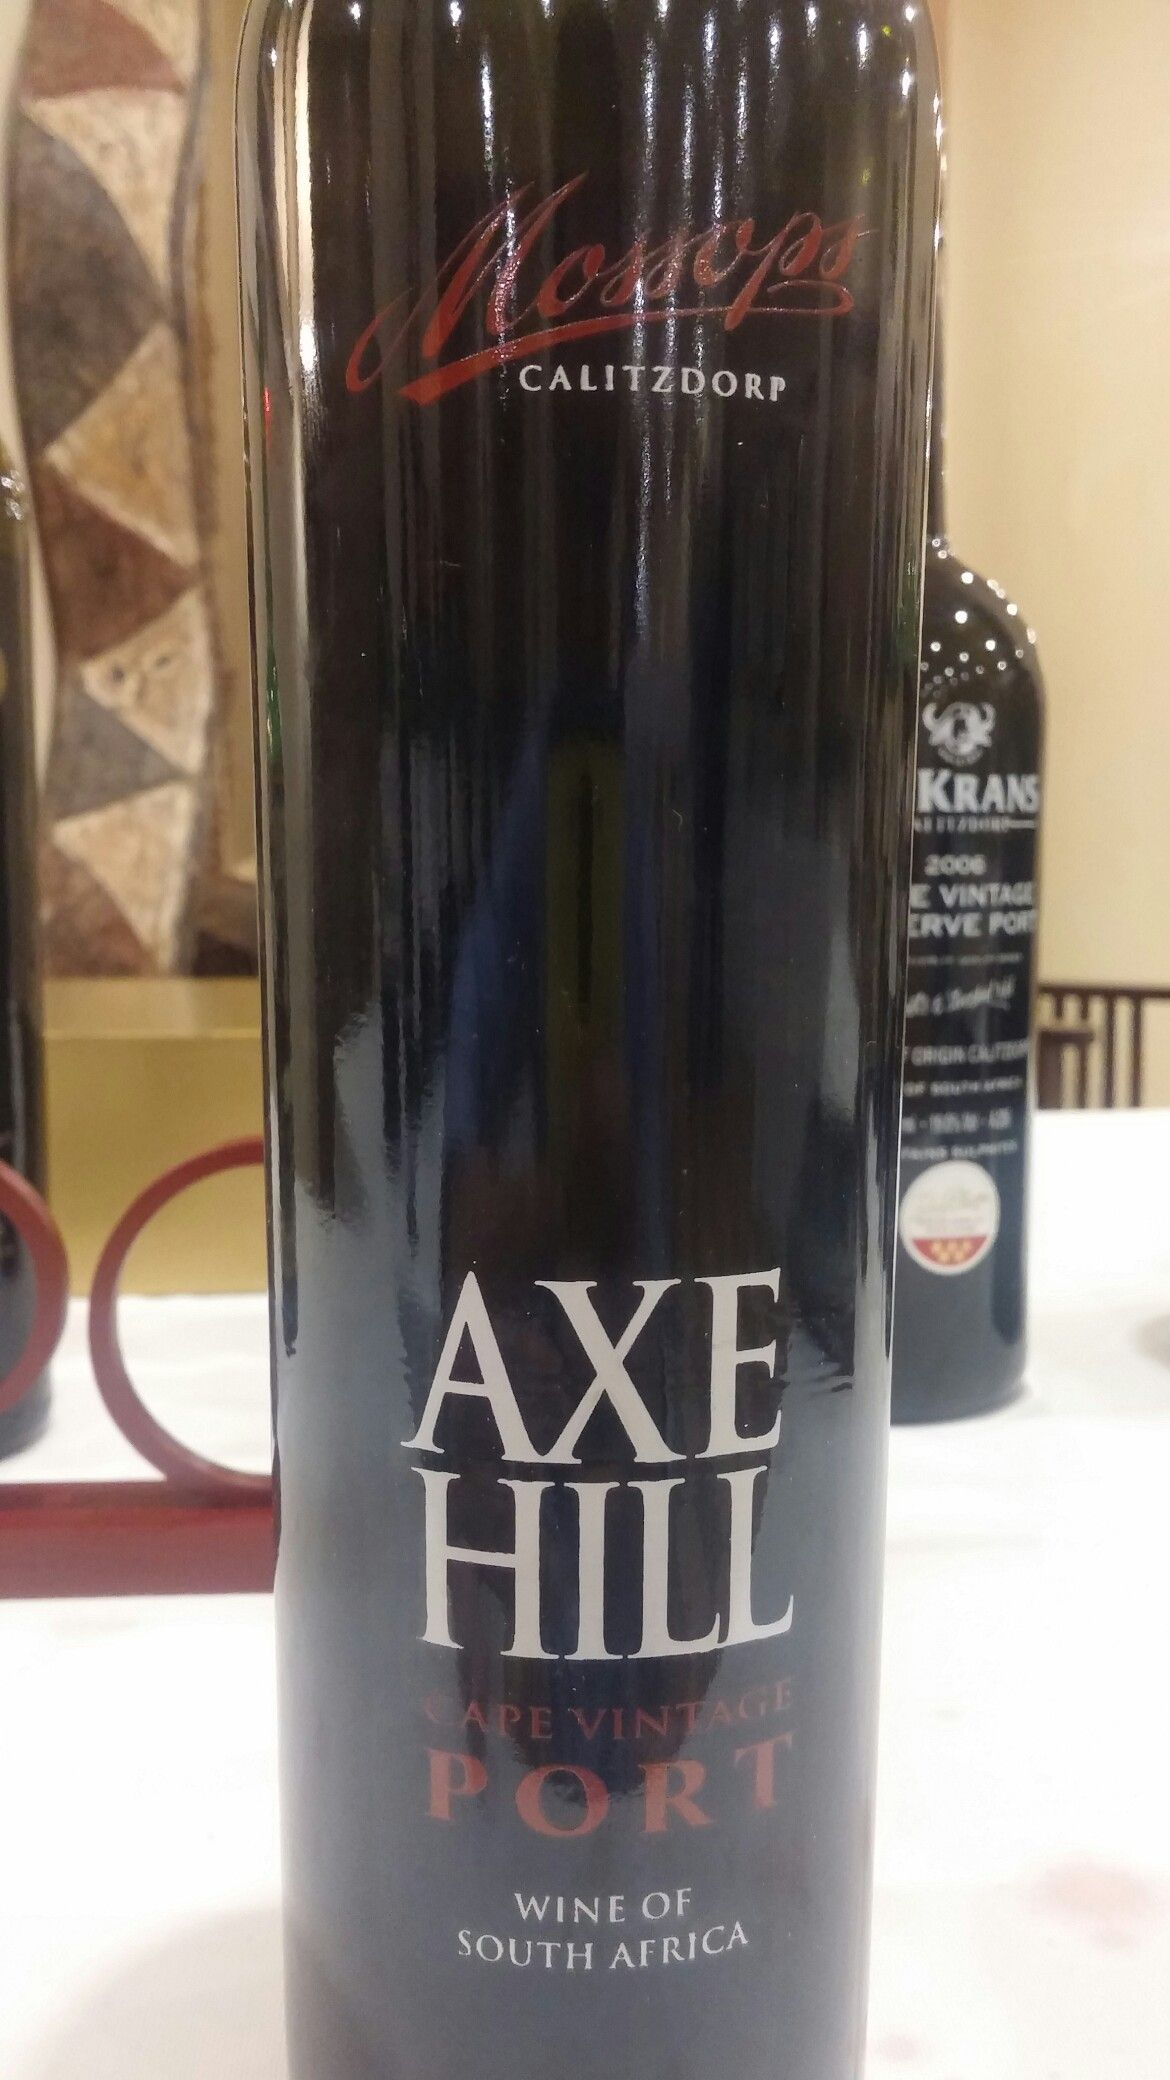 Axe Hill Calitzdorp Cape Vintage Port 2005 Sommelier Miguel Chan